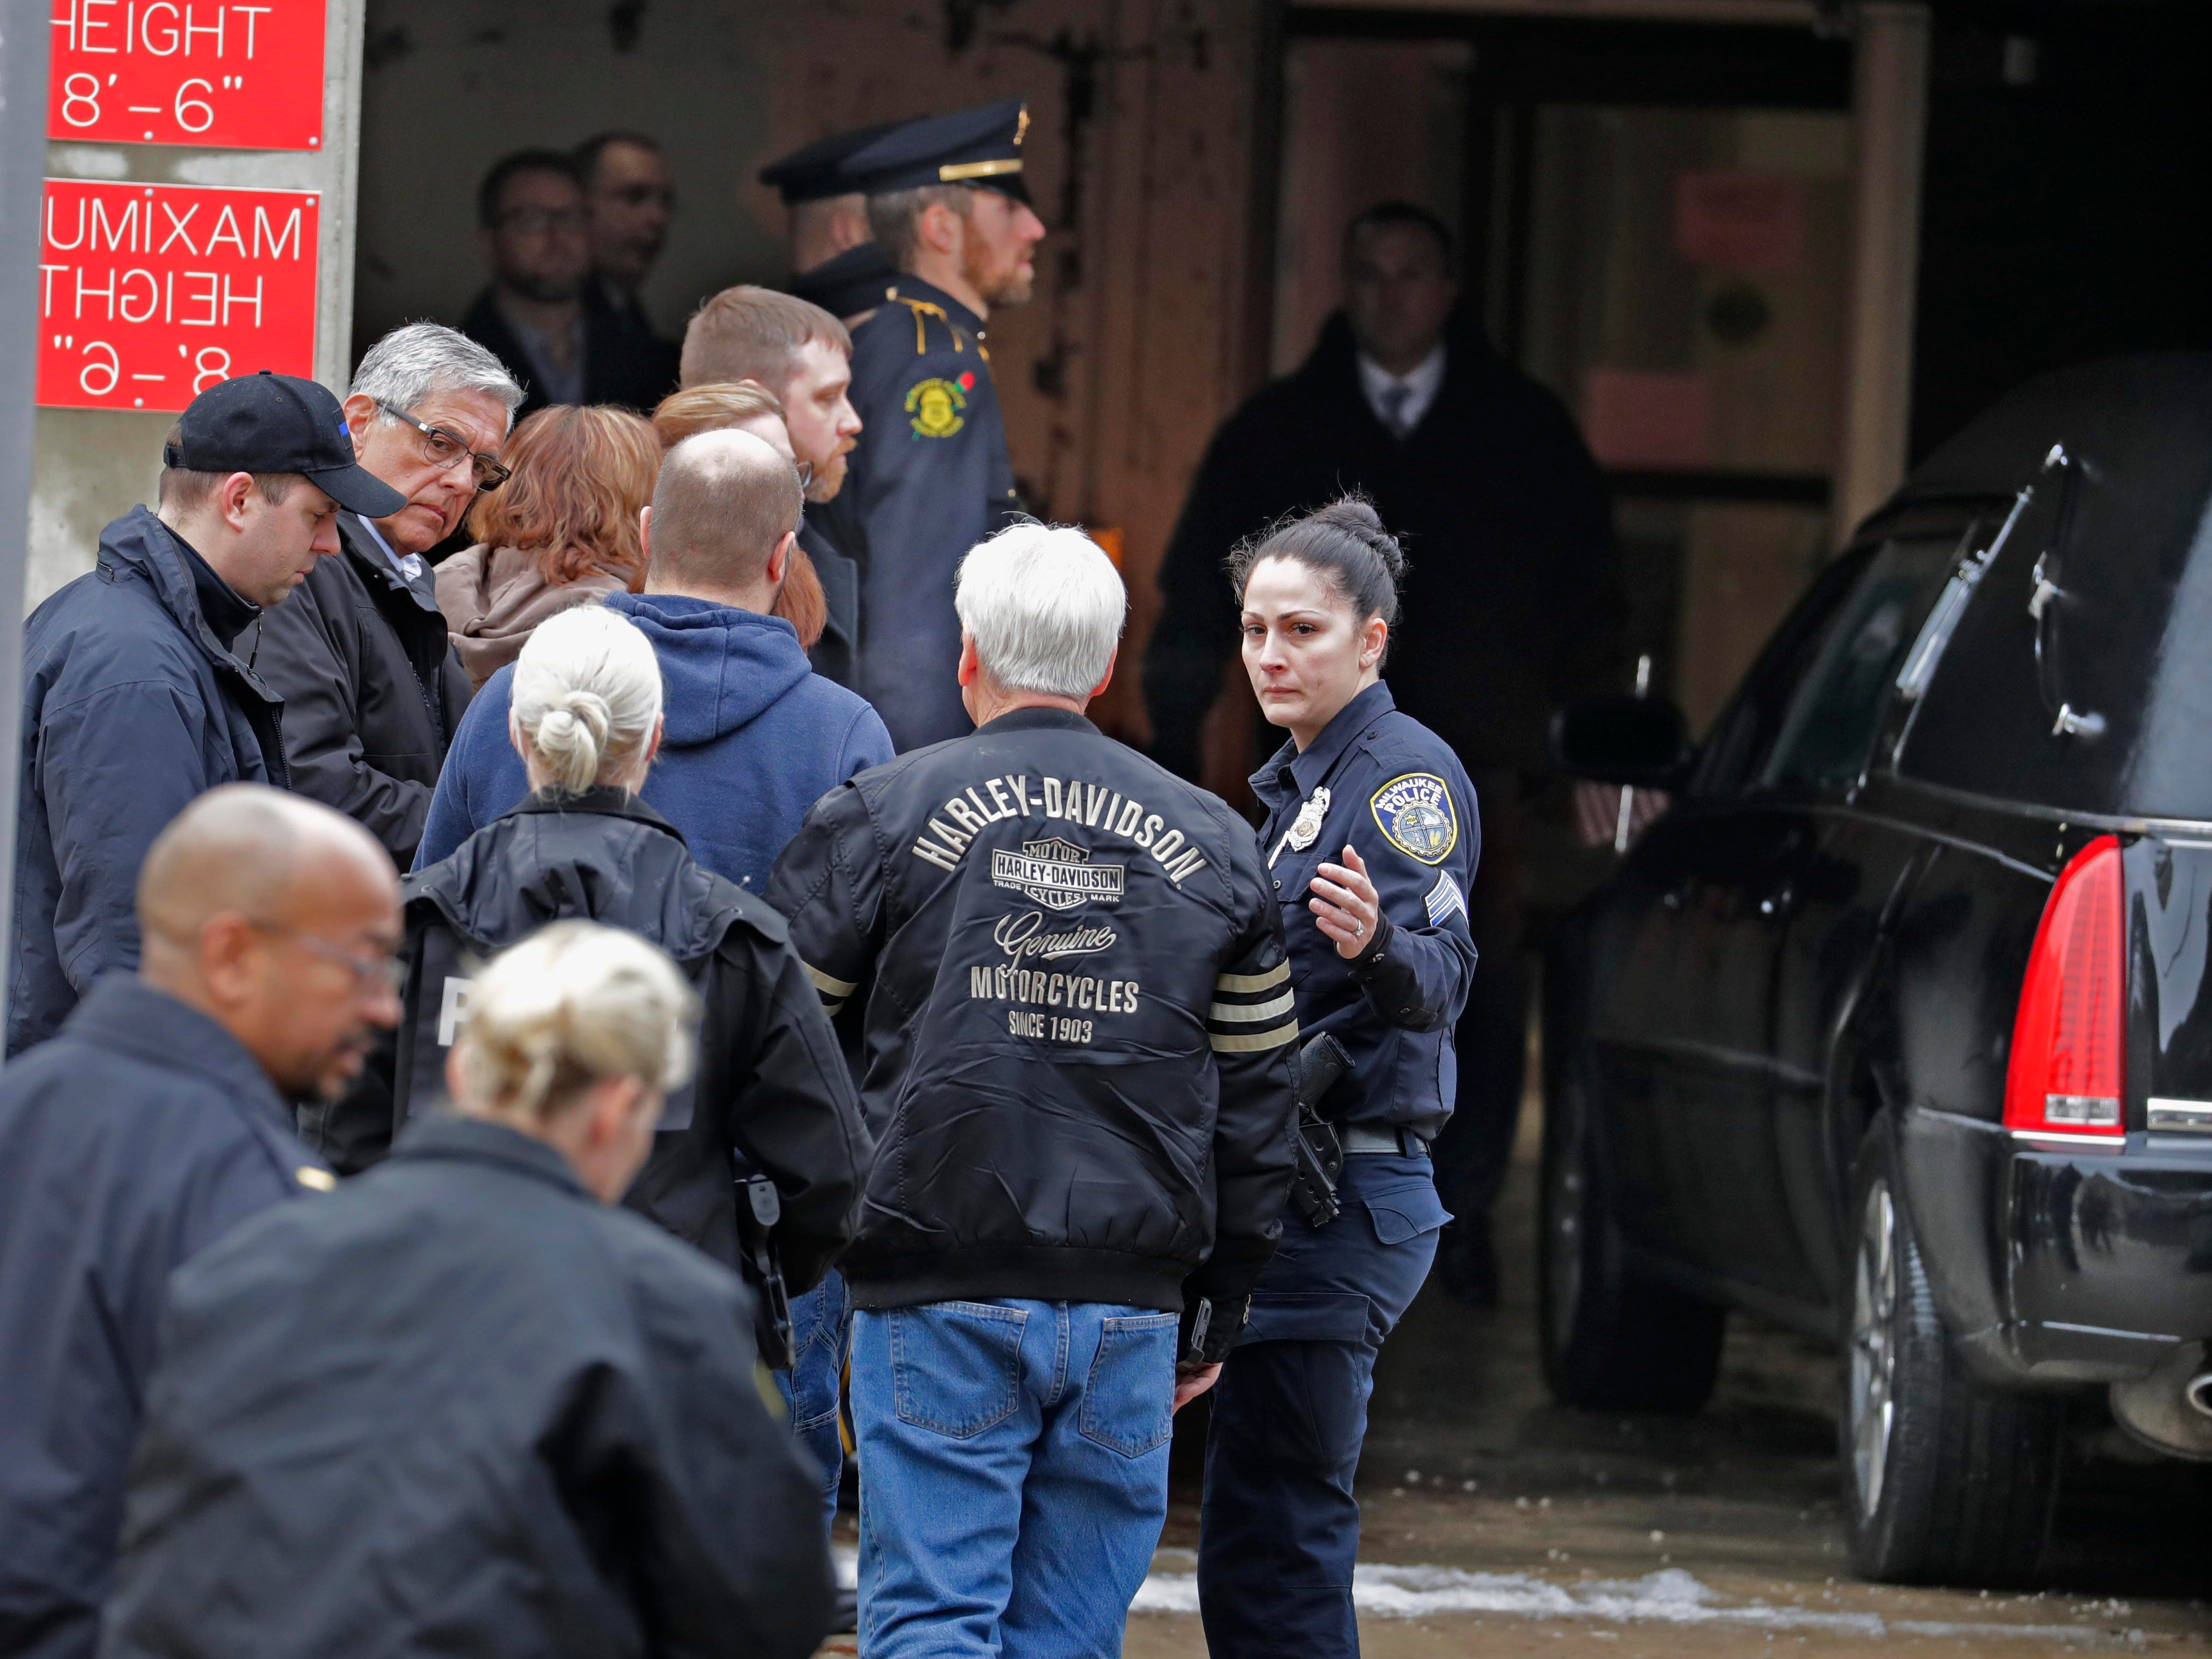 Police officers, friends and possibly family members watch as the hearse arrived at the Milwaukee County Medical Examiner's Office on Wednesday.